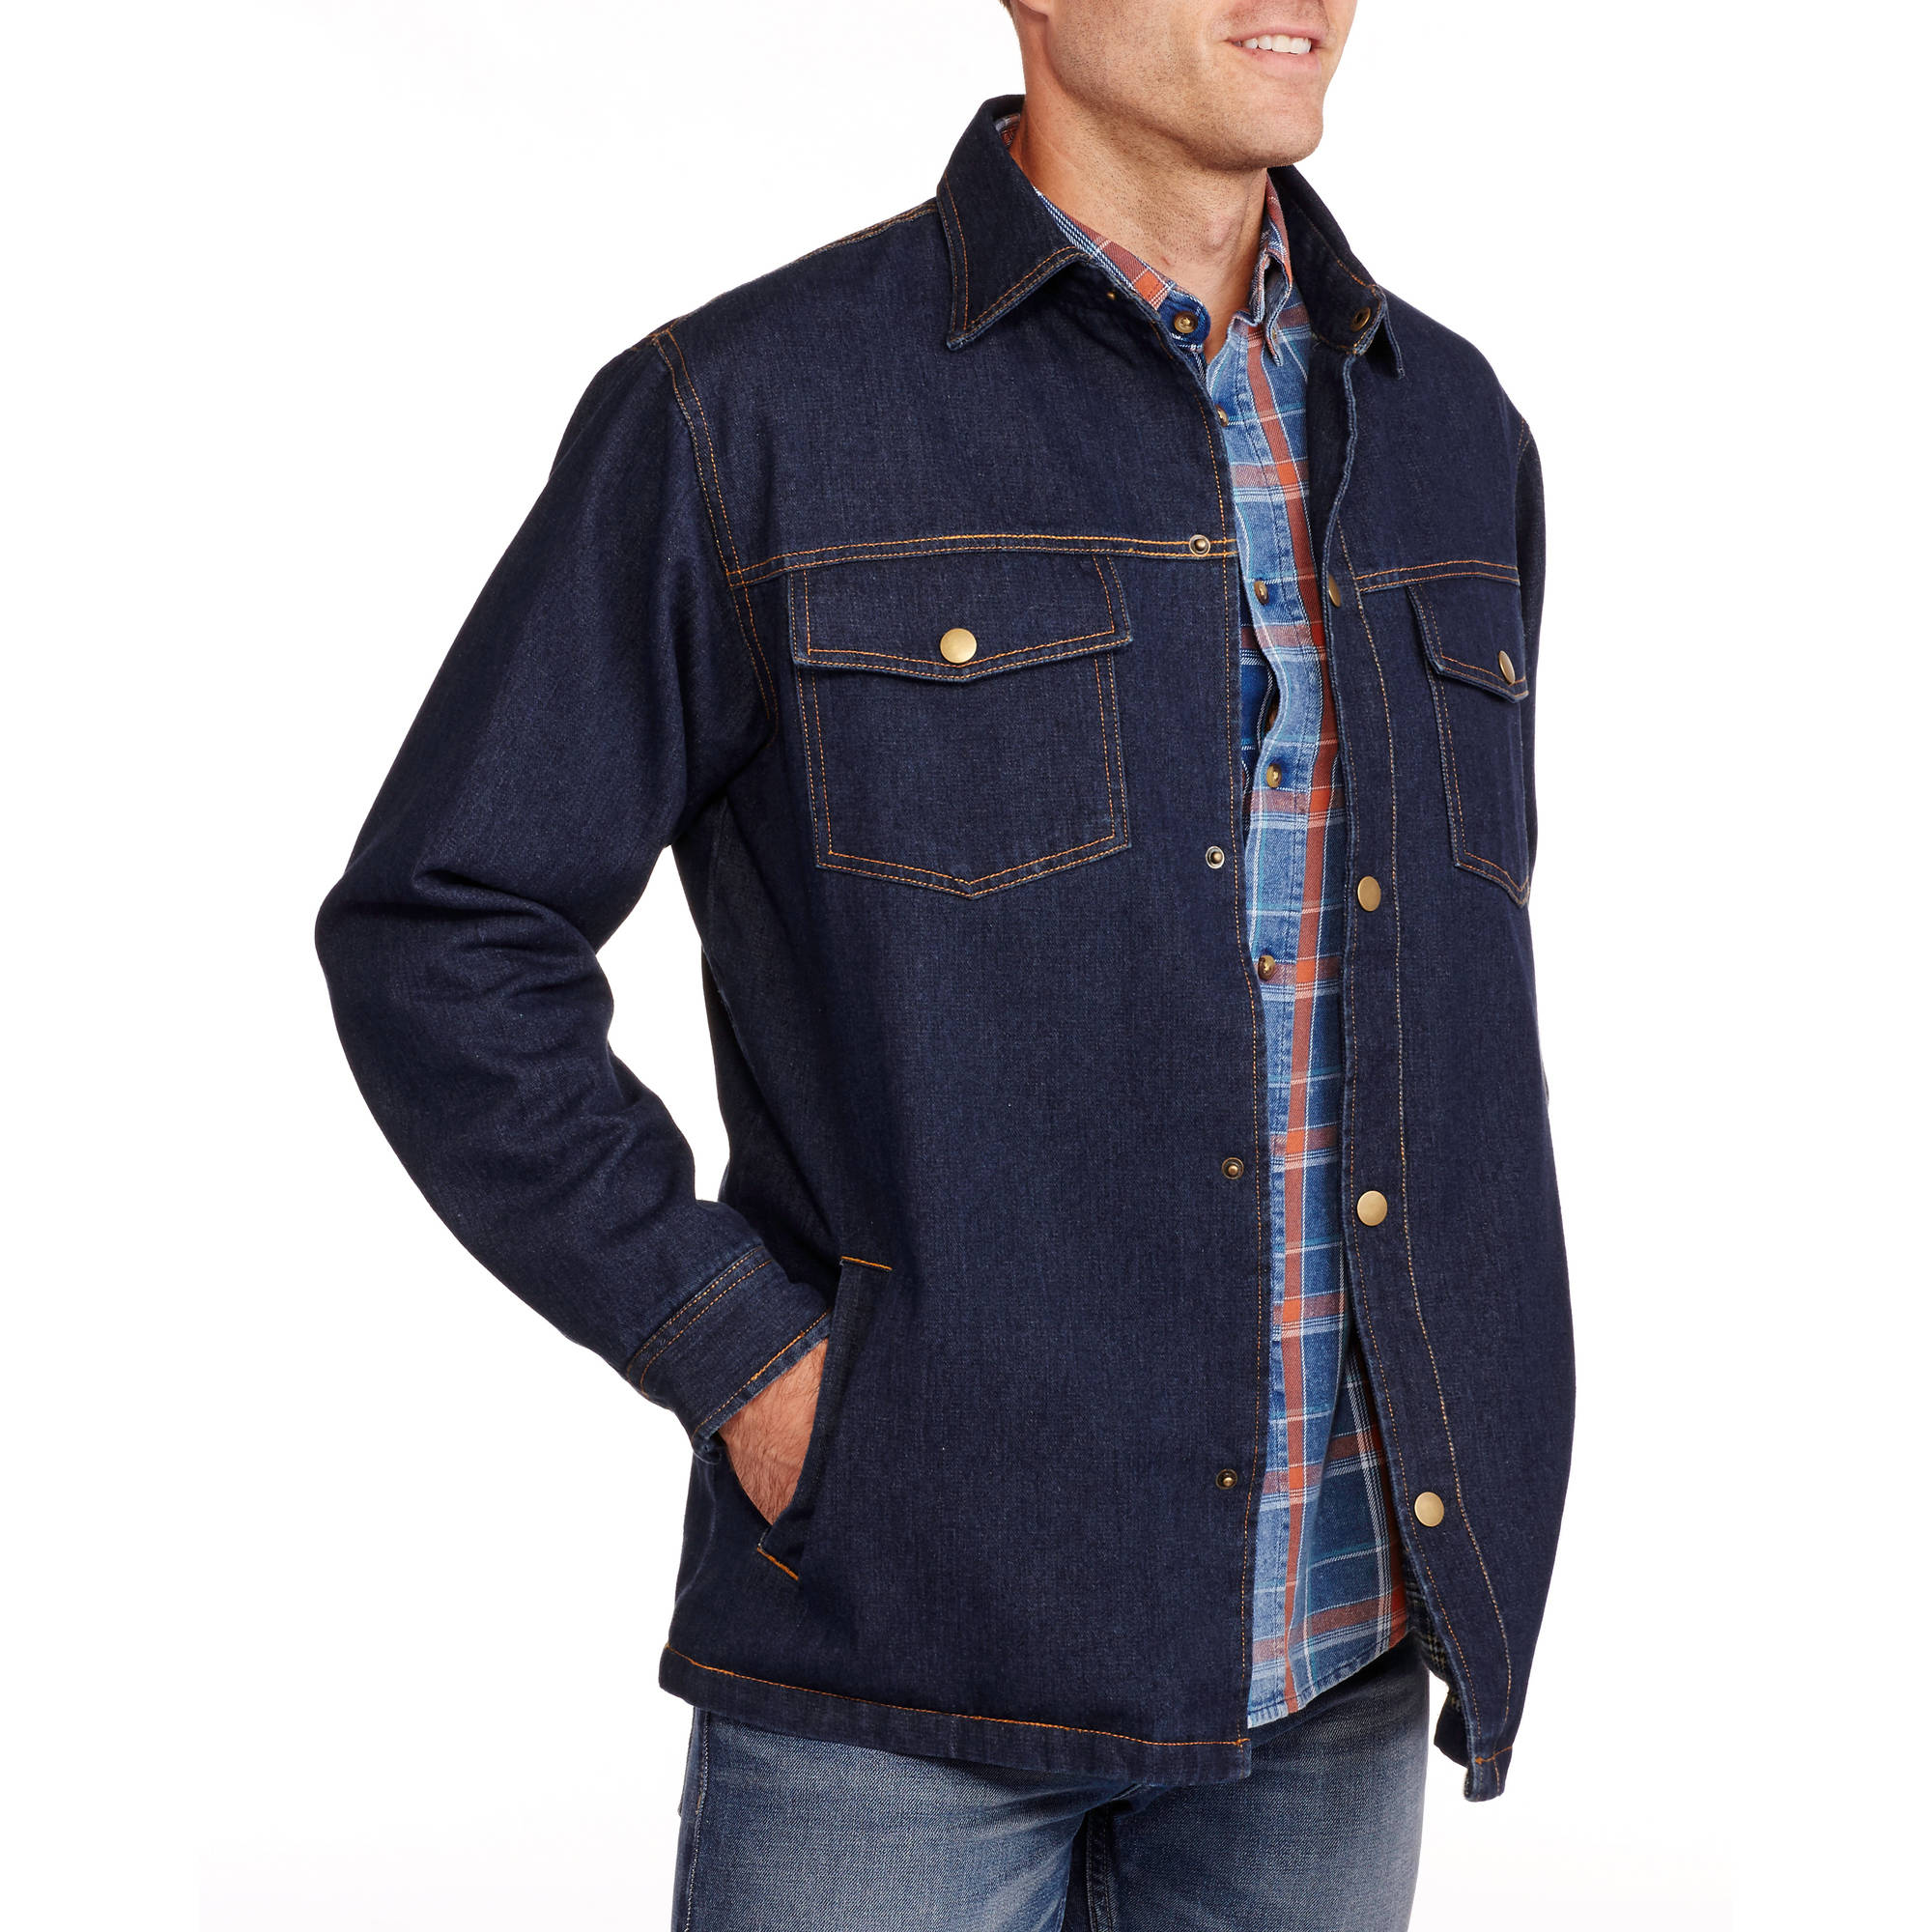 Find great deals on eBay for plaid denim jacket. Shop with confidence.